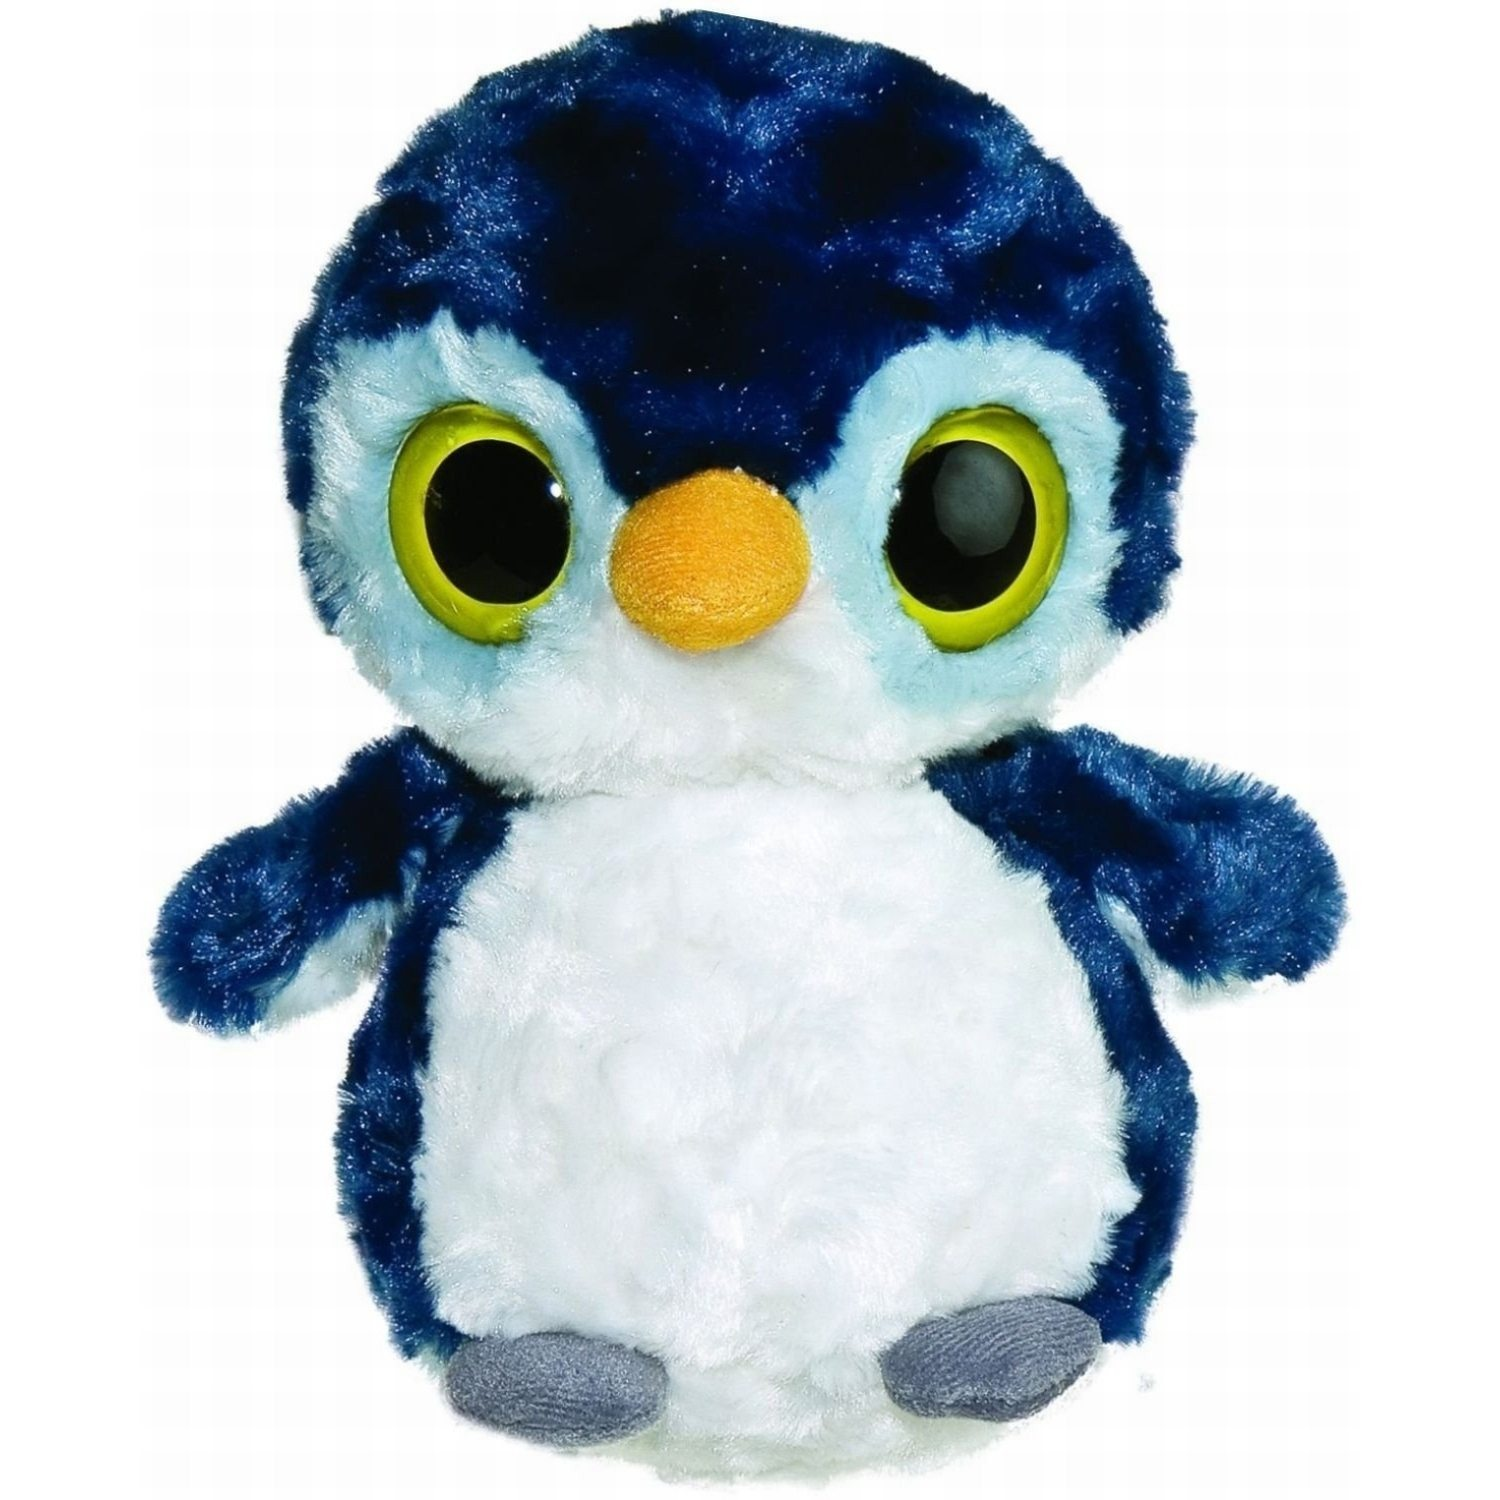 Kuscheltier Yoohoo & Friends pinguin